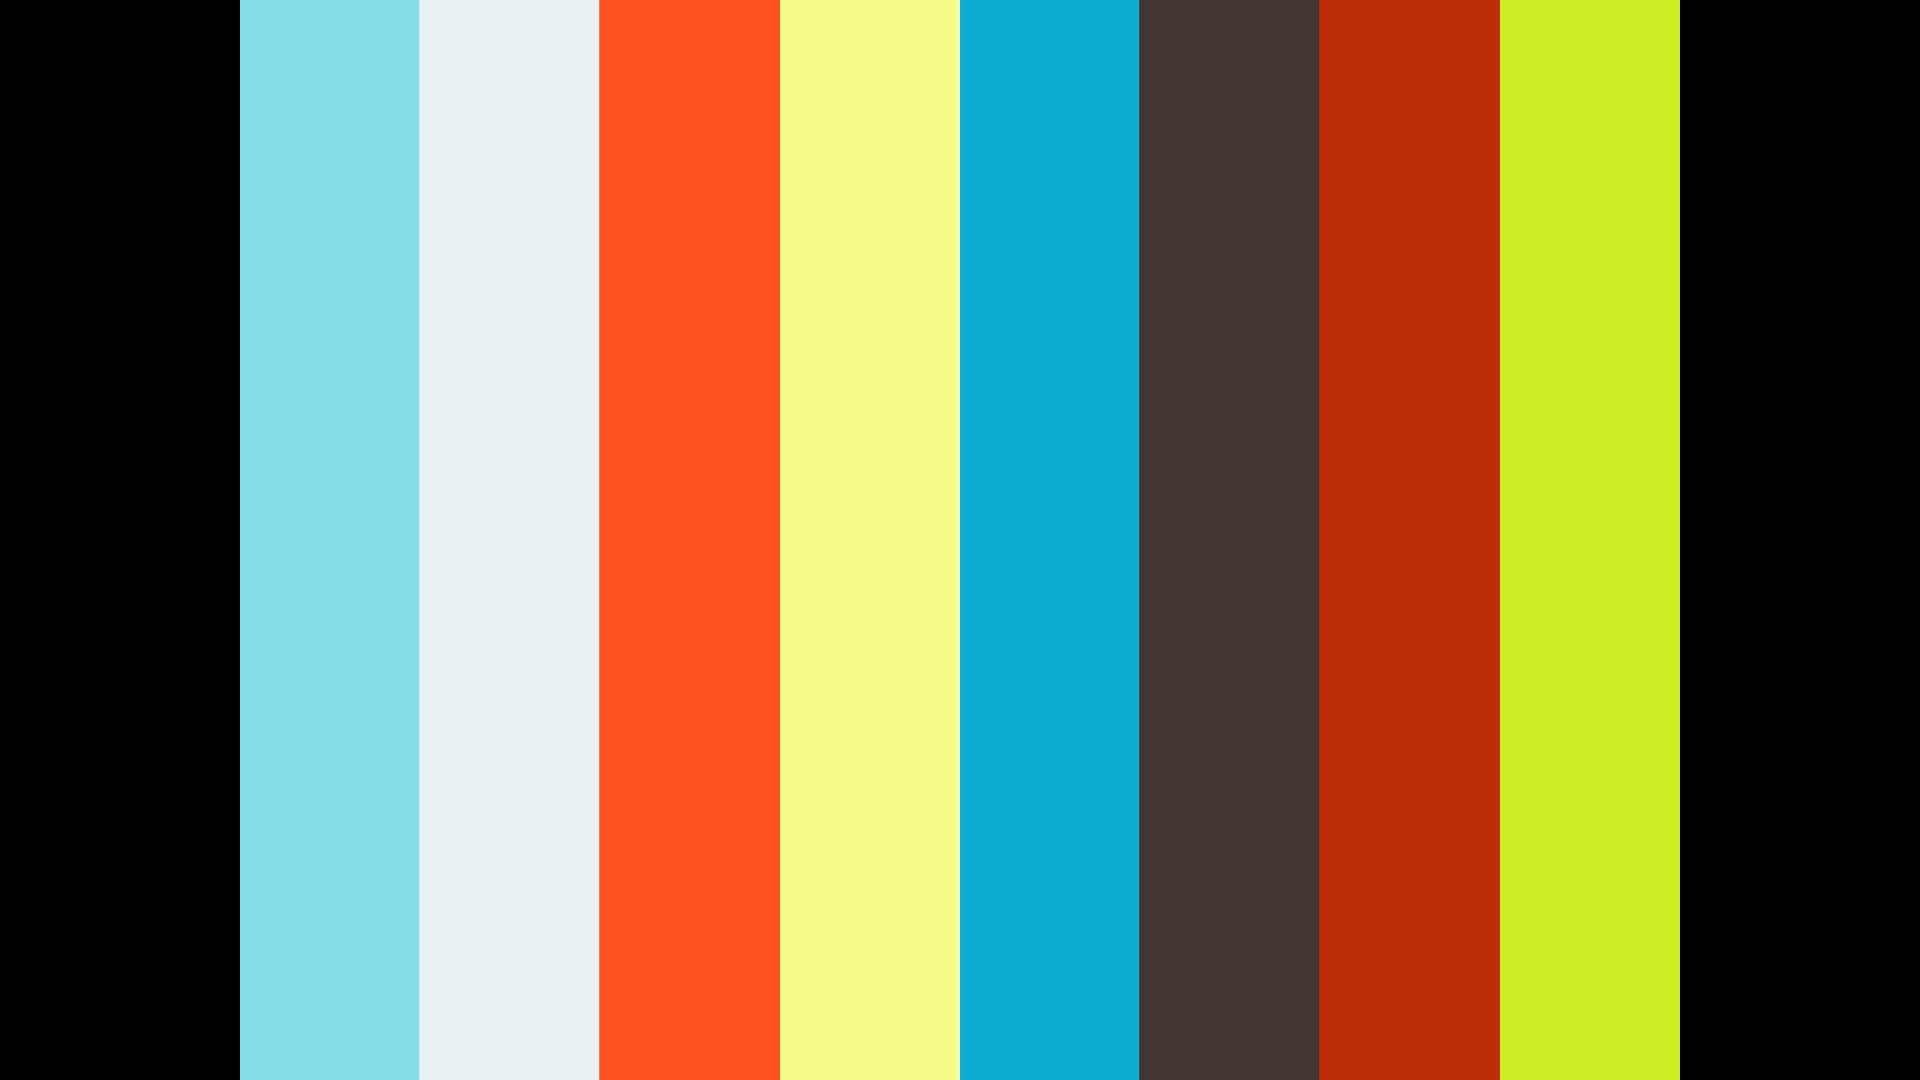 Pedro's Testimony - Healing from Thrombosis in the Leg